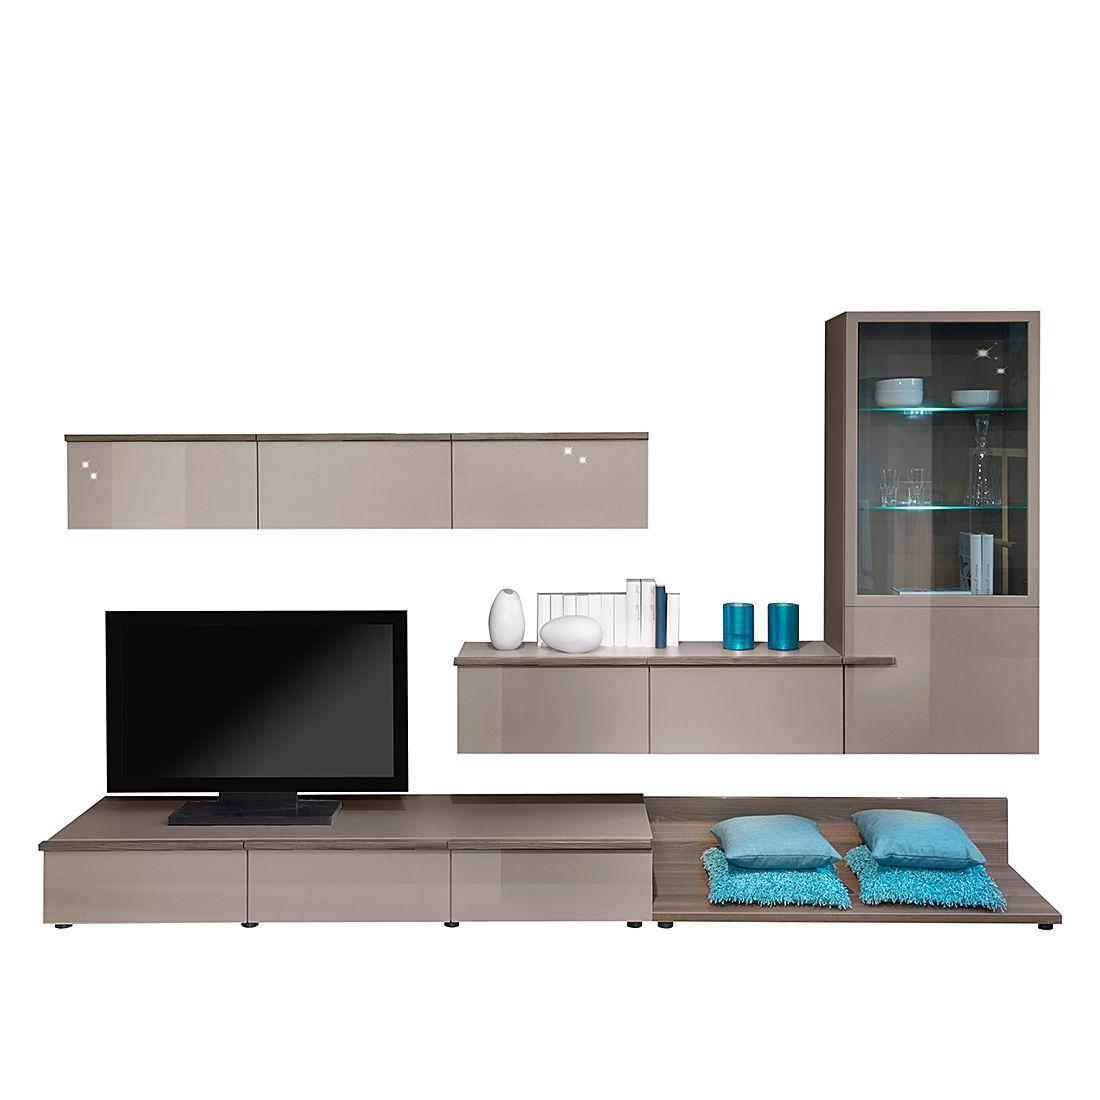 linea w wohnwand 5 teilig steingrau steingrau hochglanz esche dunkel. Black Bedroom Furniture Sets. Home Design Ideas